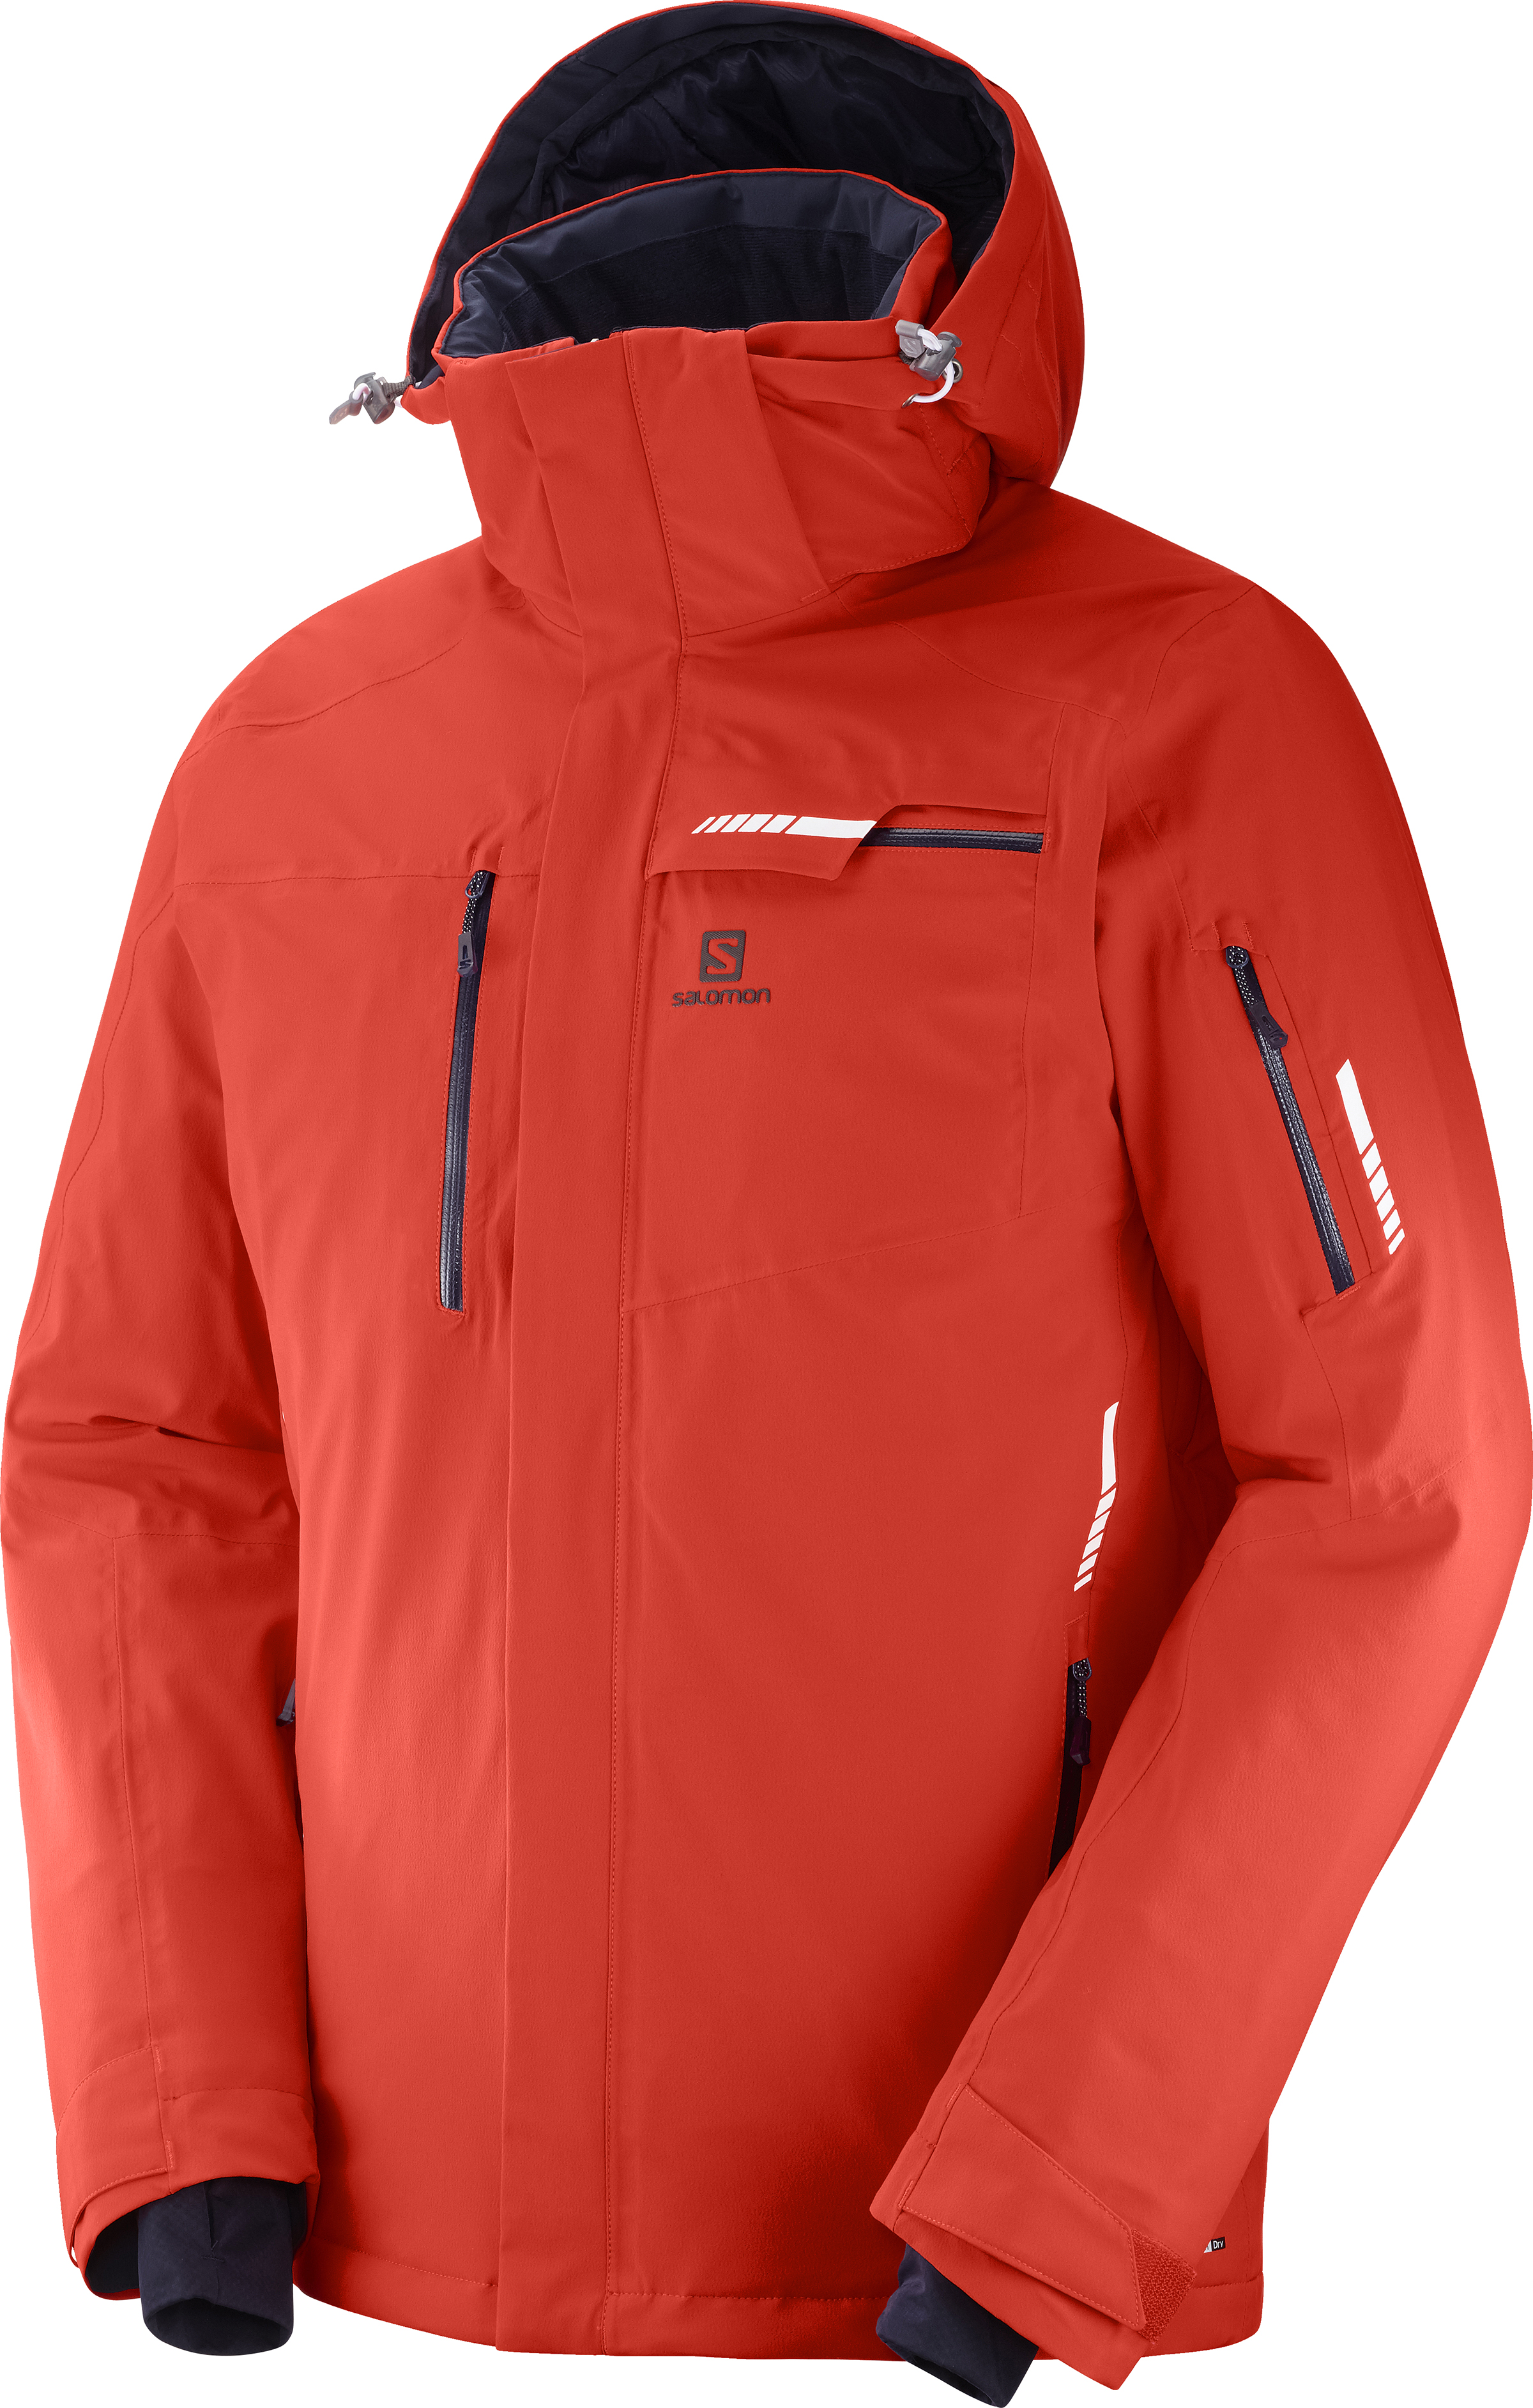 Куртка горнолыжная SALOMON Brillant Jacket M Fiery Red  (18/19)